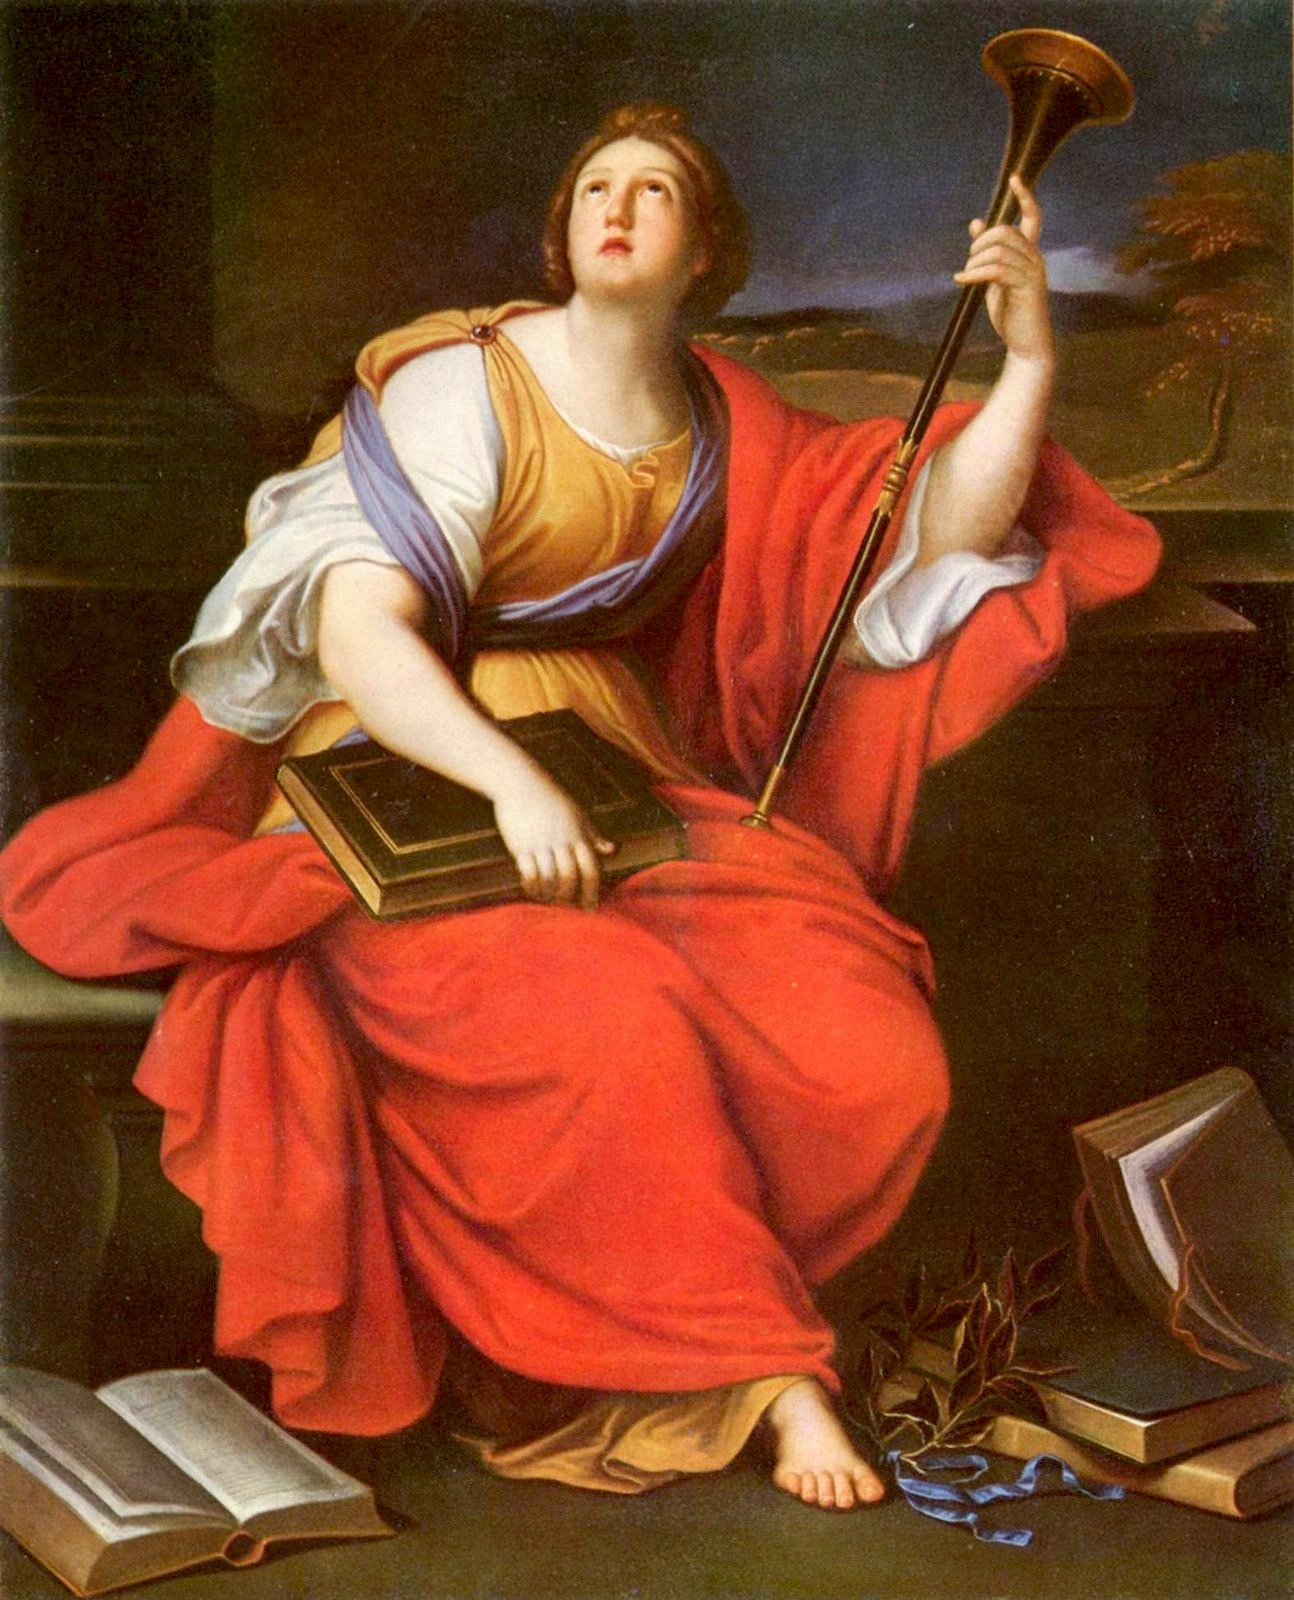 Clio, muse of heroic poetry and history, by Pierre Mignard, 17th century.